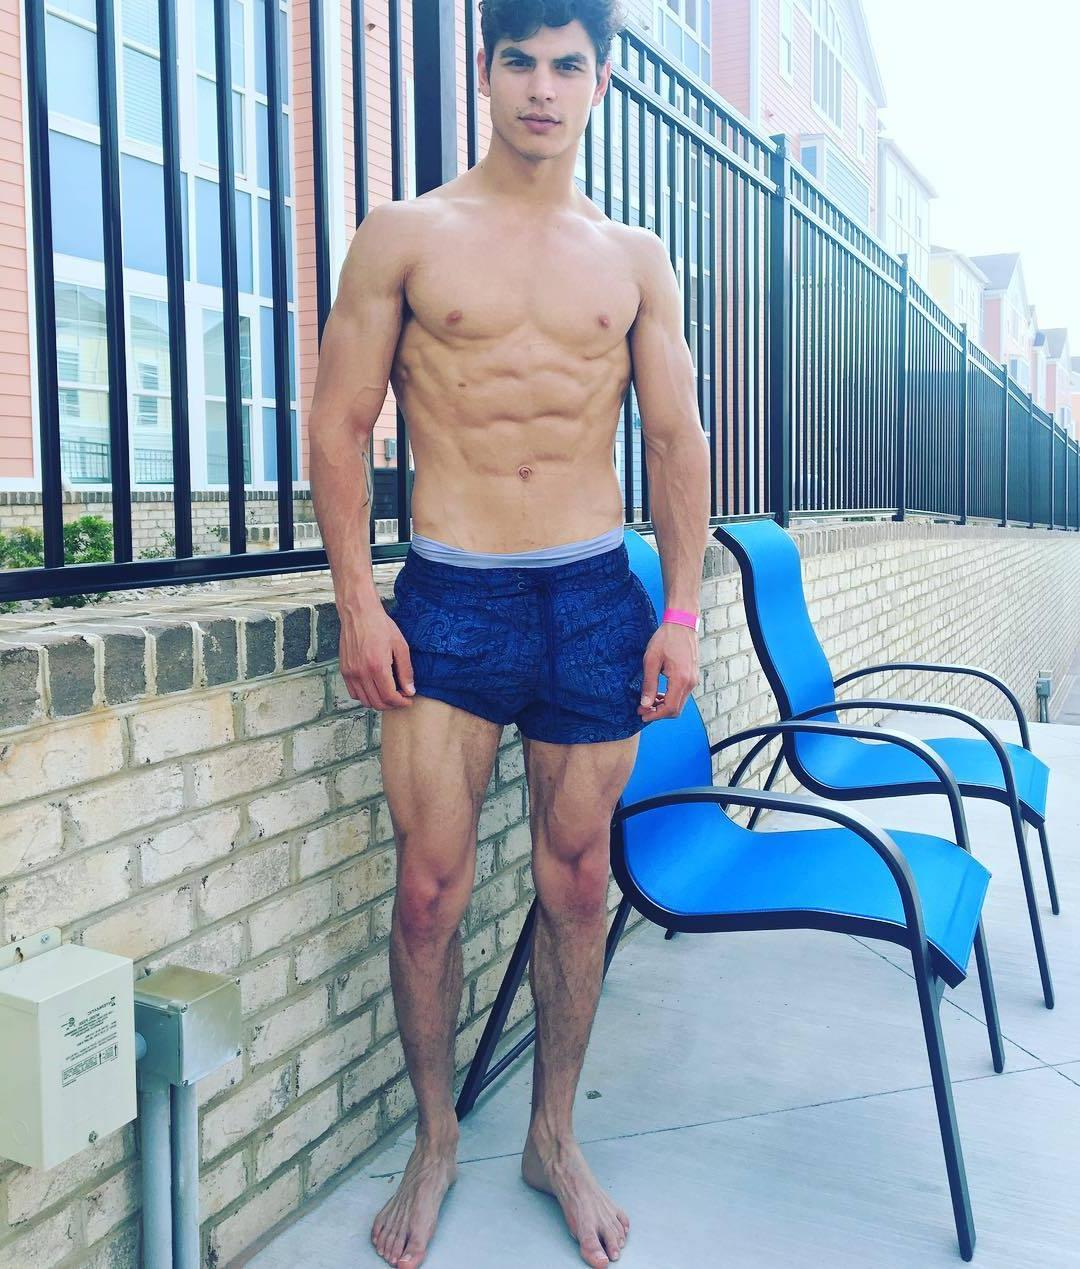 hot-fit-muscular-young-shirtless-guys-blue-shorts